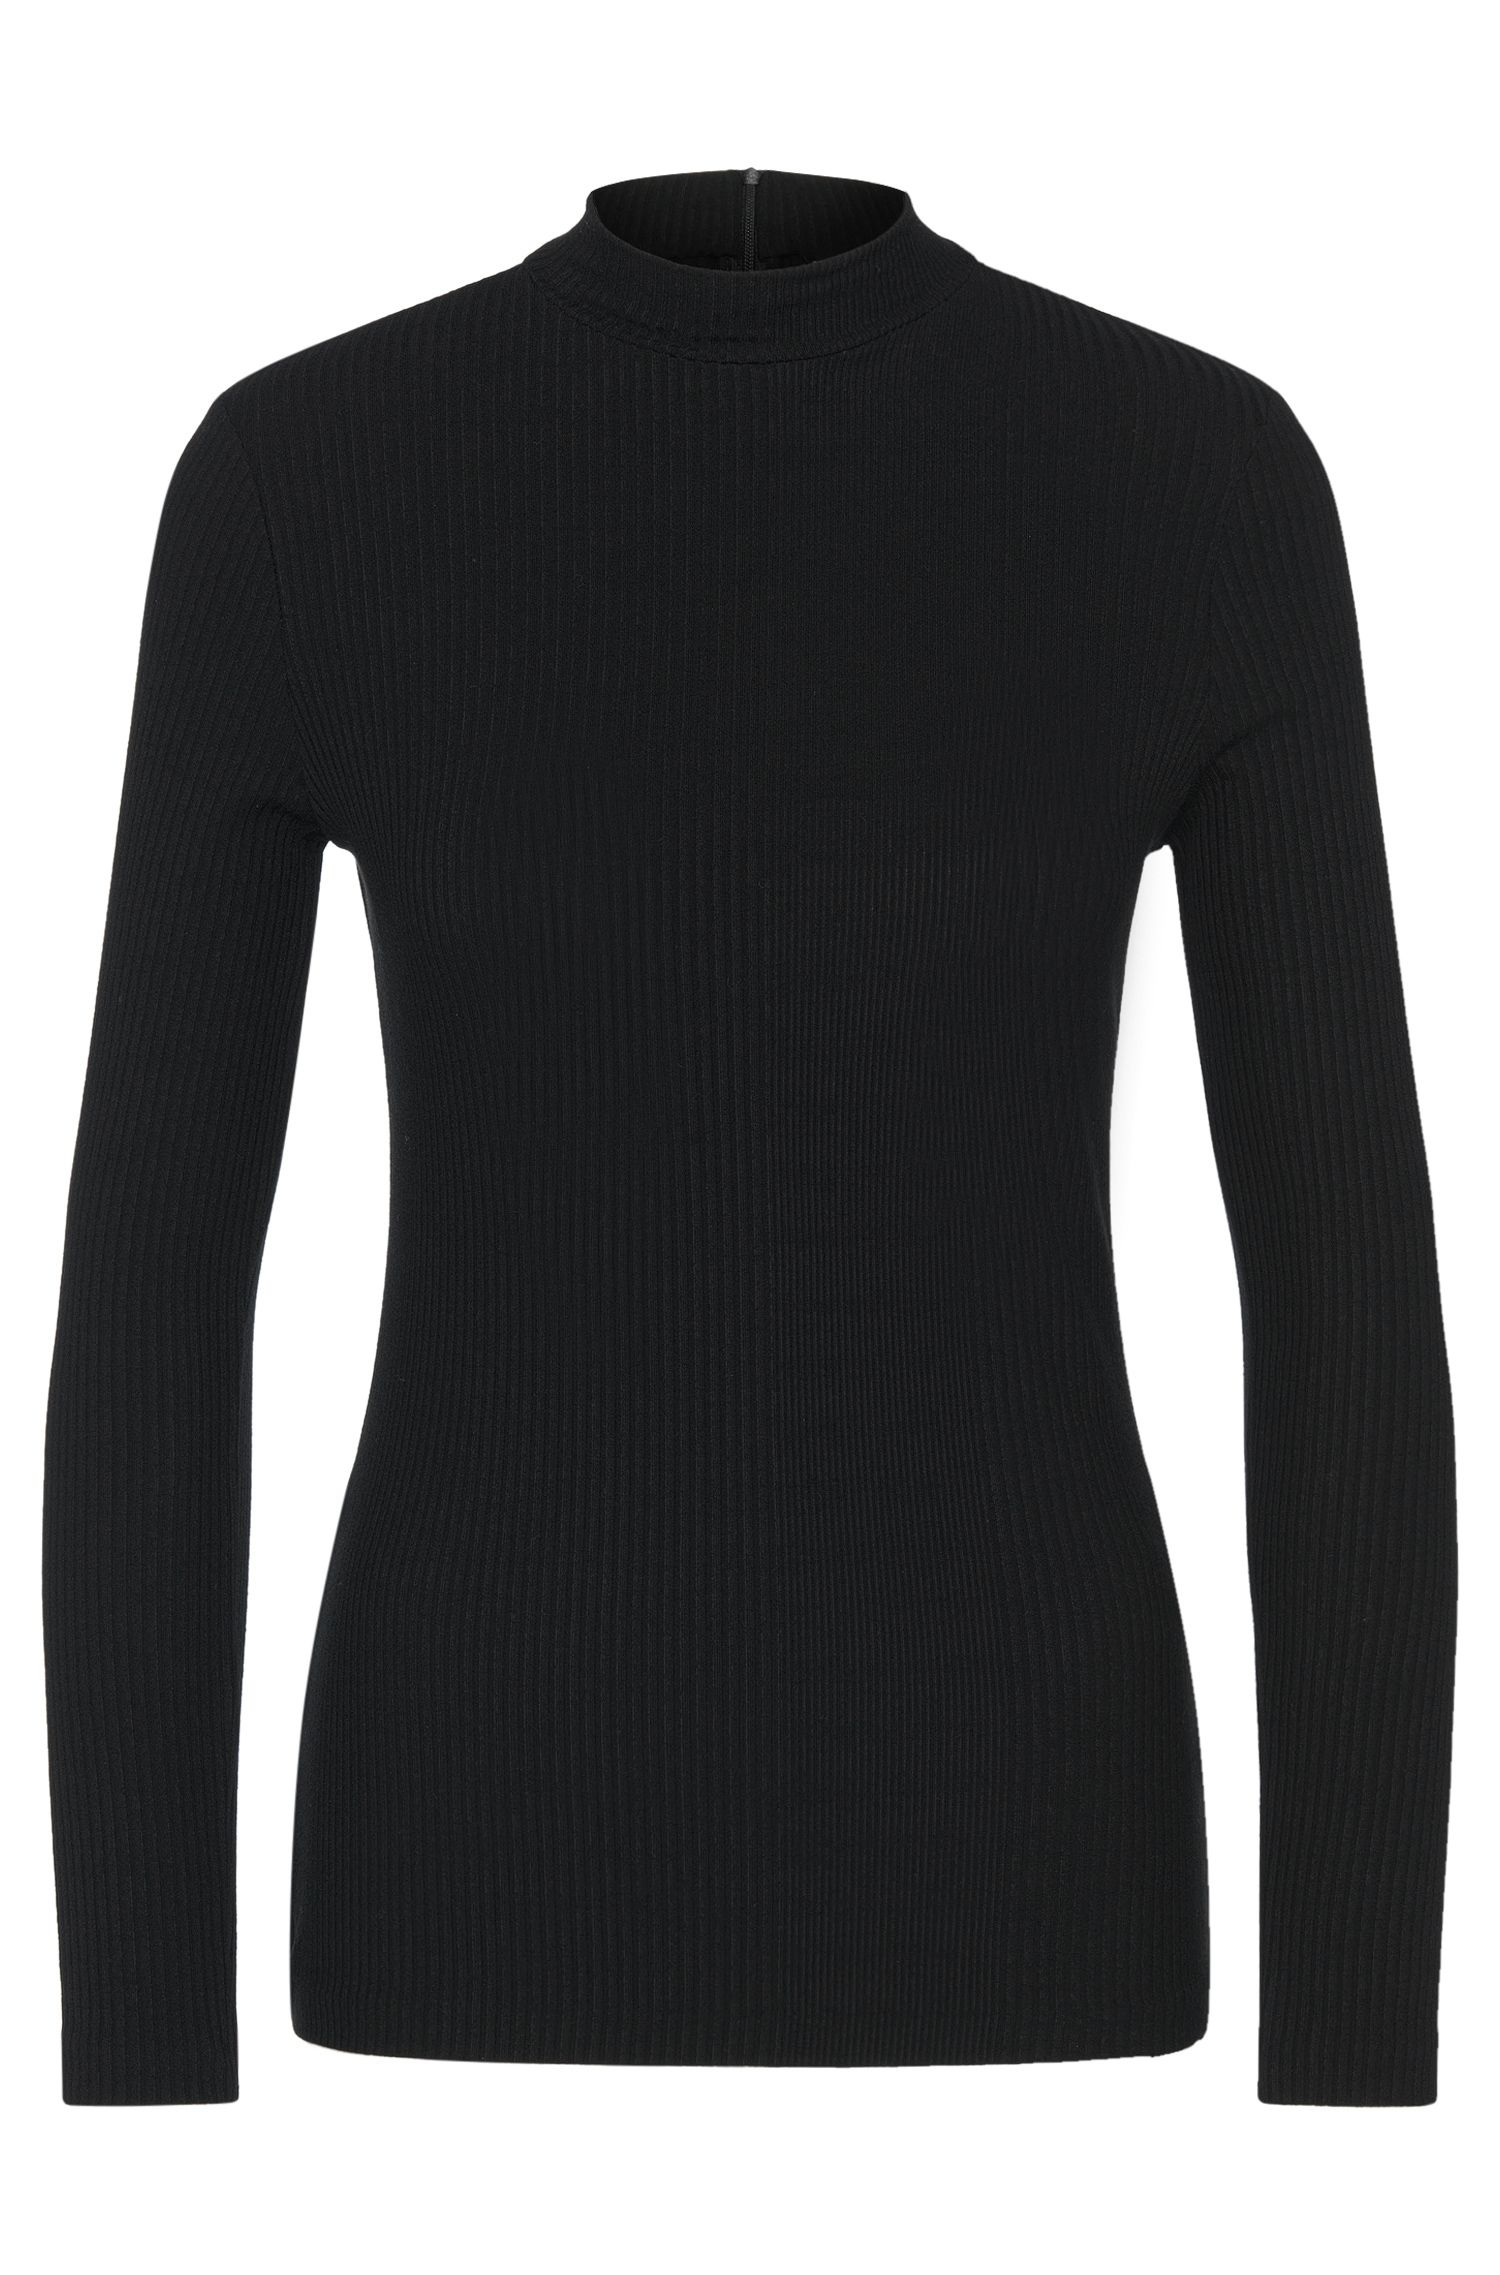 'Elaise' | Stretch Ribbed Mock Turtleneck